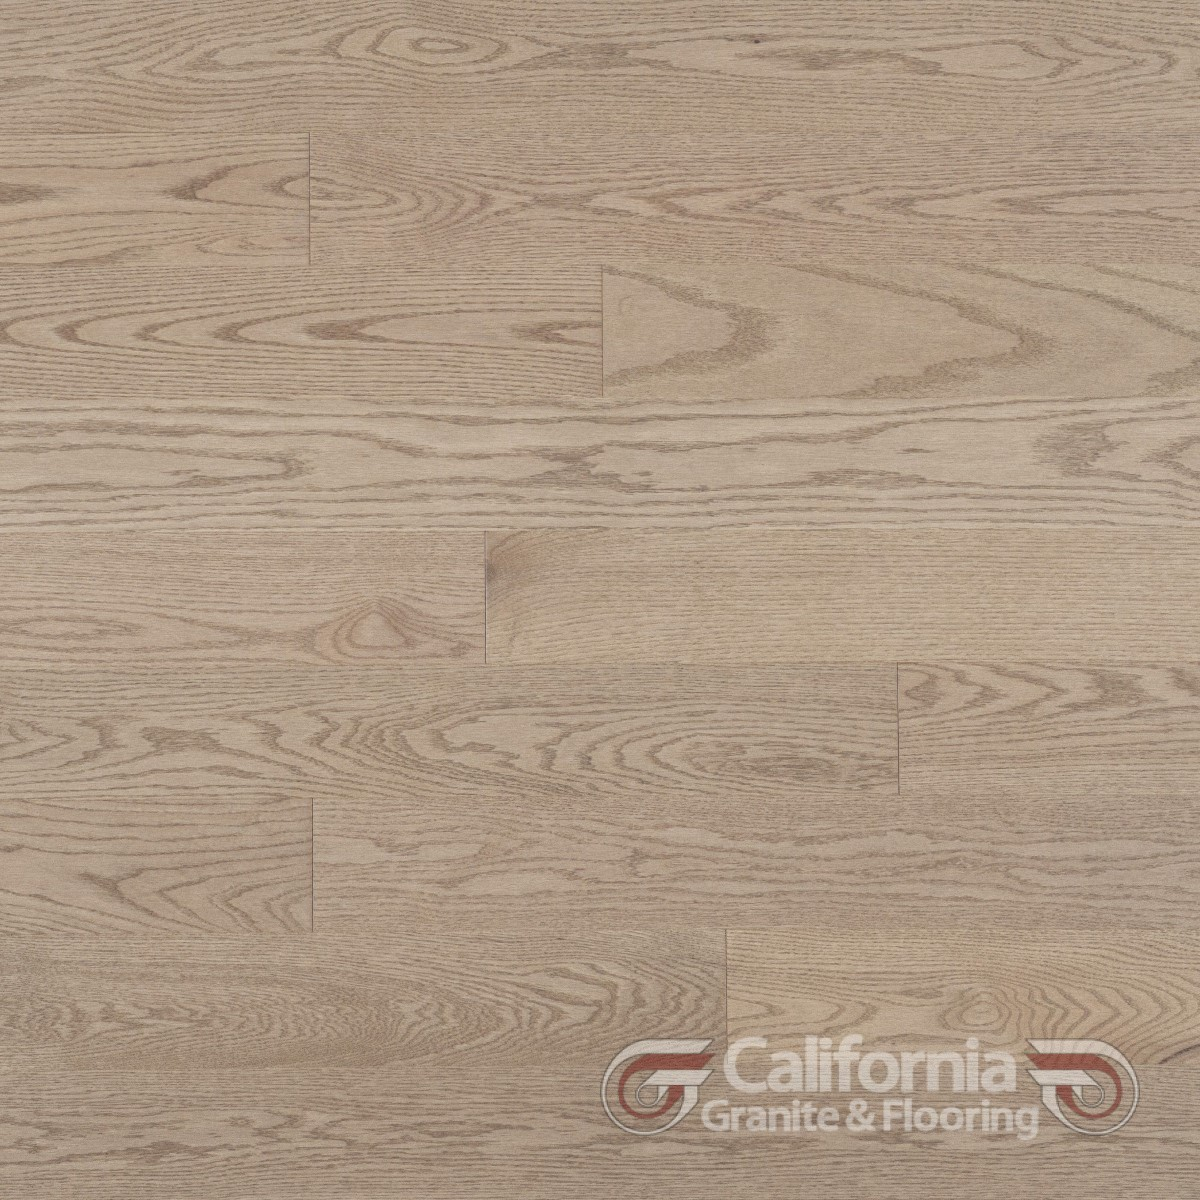 hardwood-flooring-red-oak-rio-exclusive-smooth-2